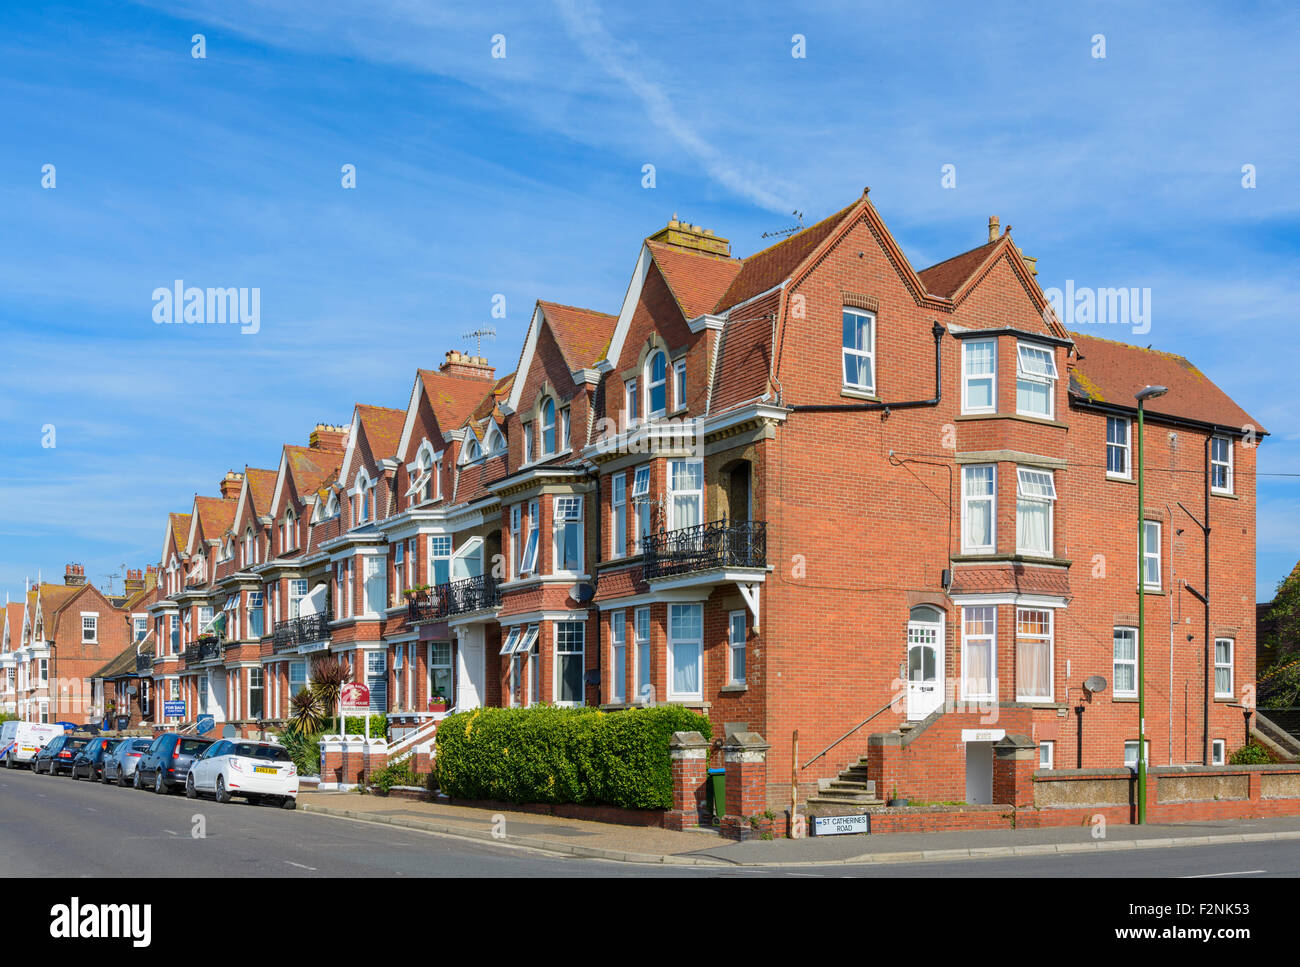 Victorian style housing and hotels in South Terrace, Littlehampton, West Sussex, England, UK. - Stock Image